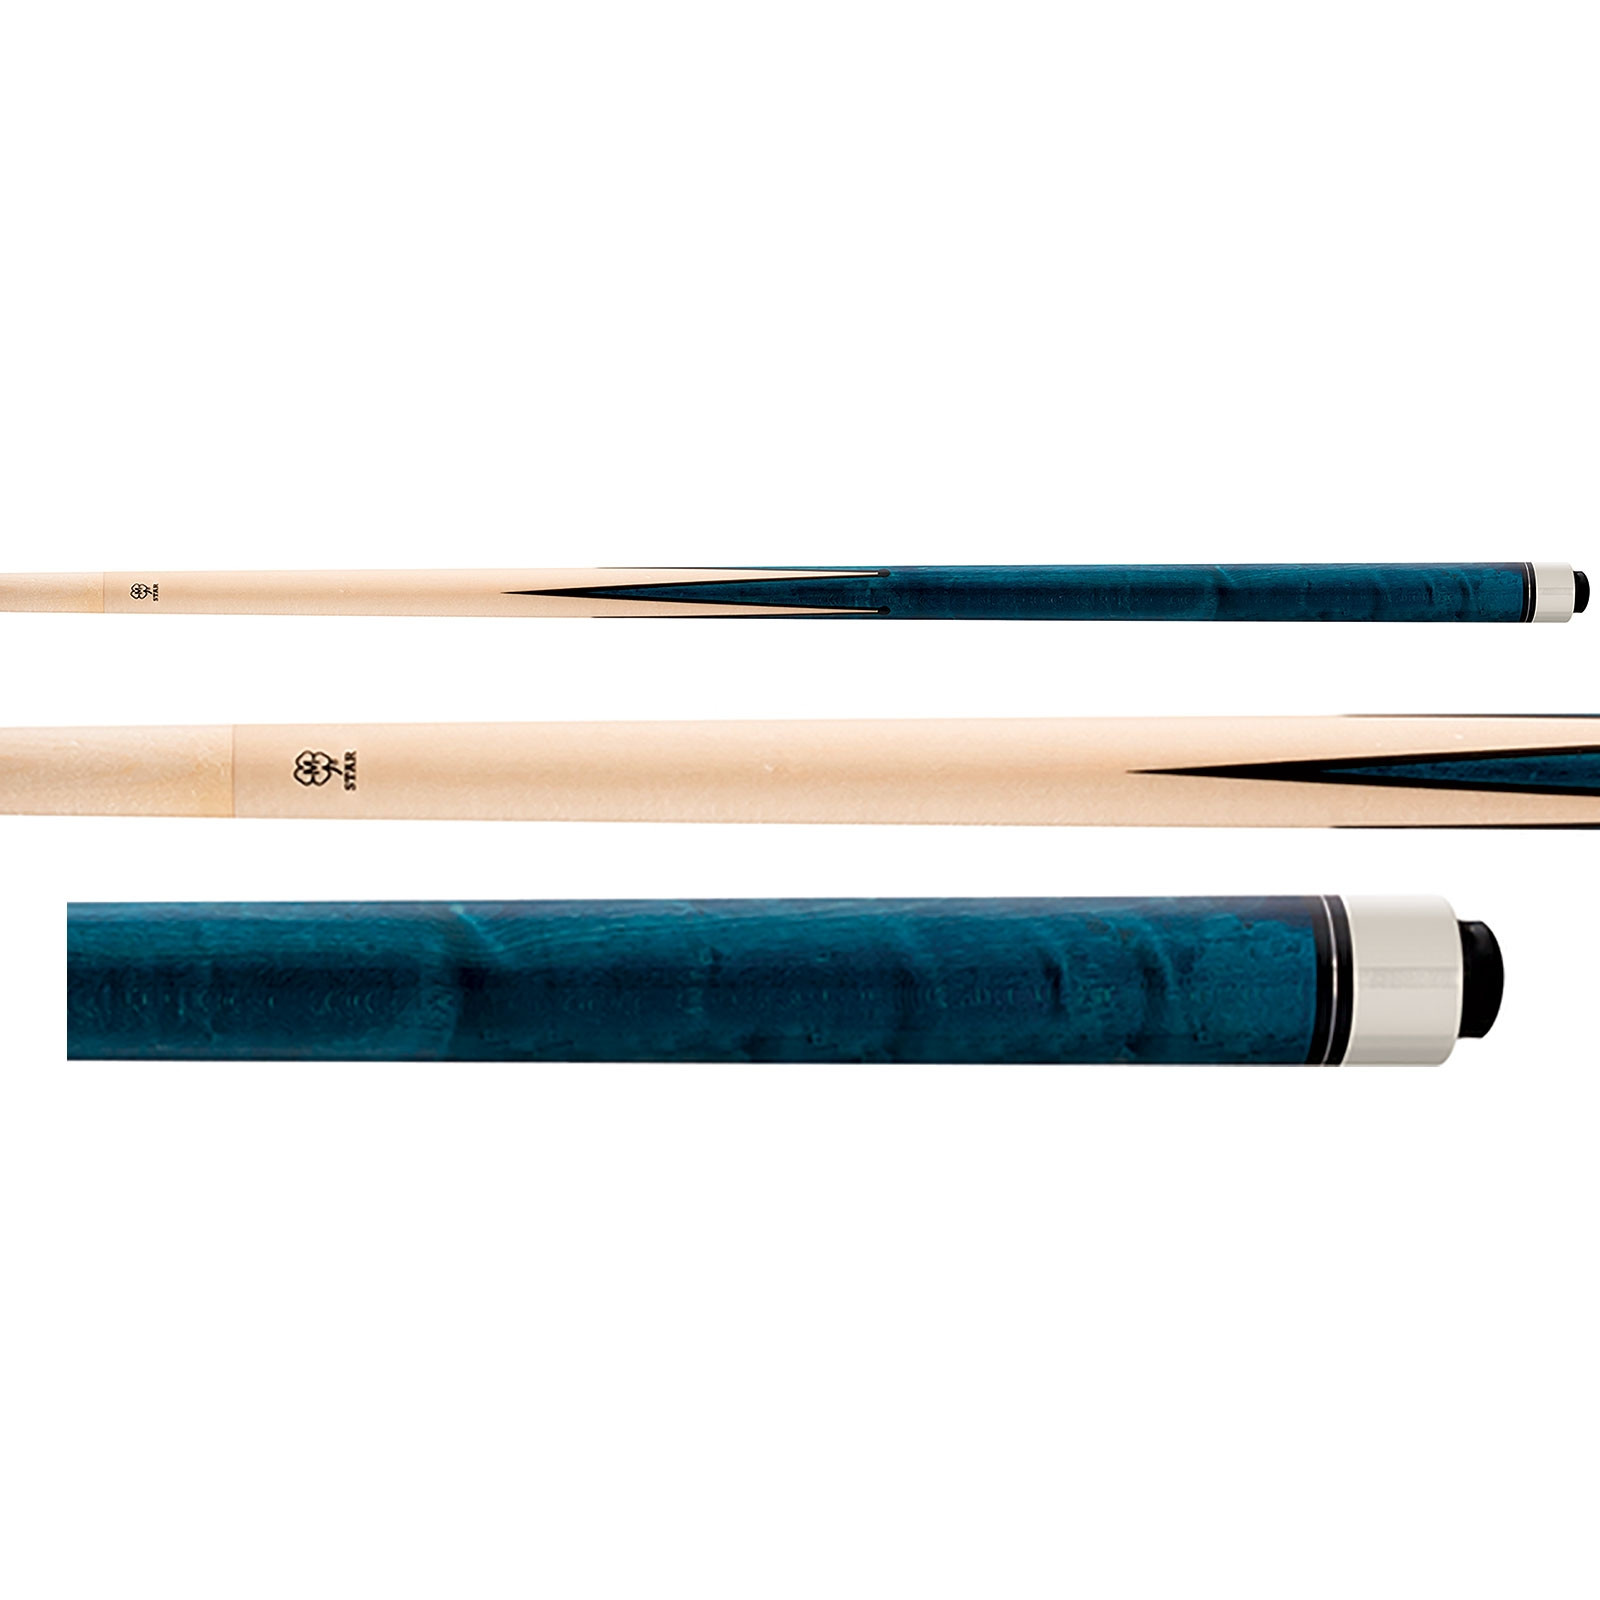 Pool cue used in the hustler picture 801